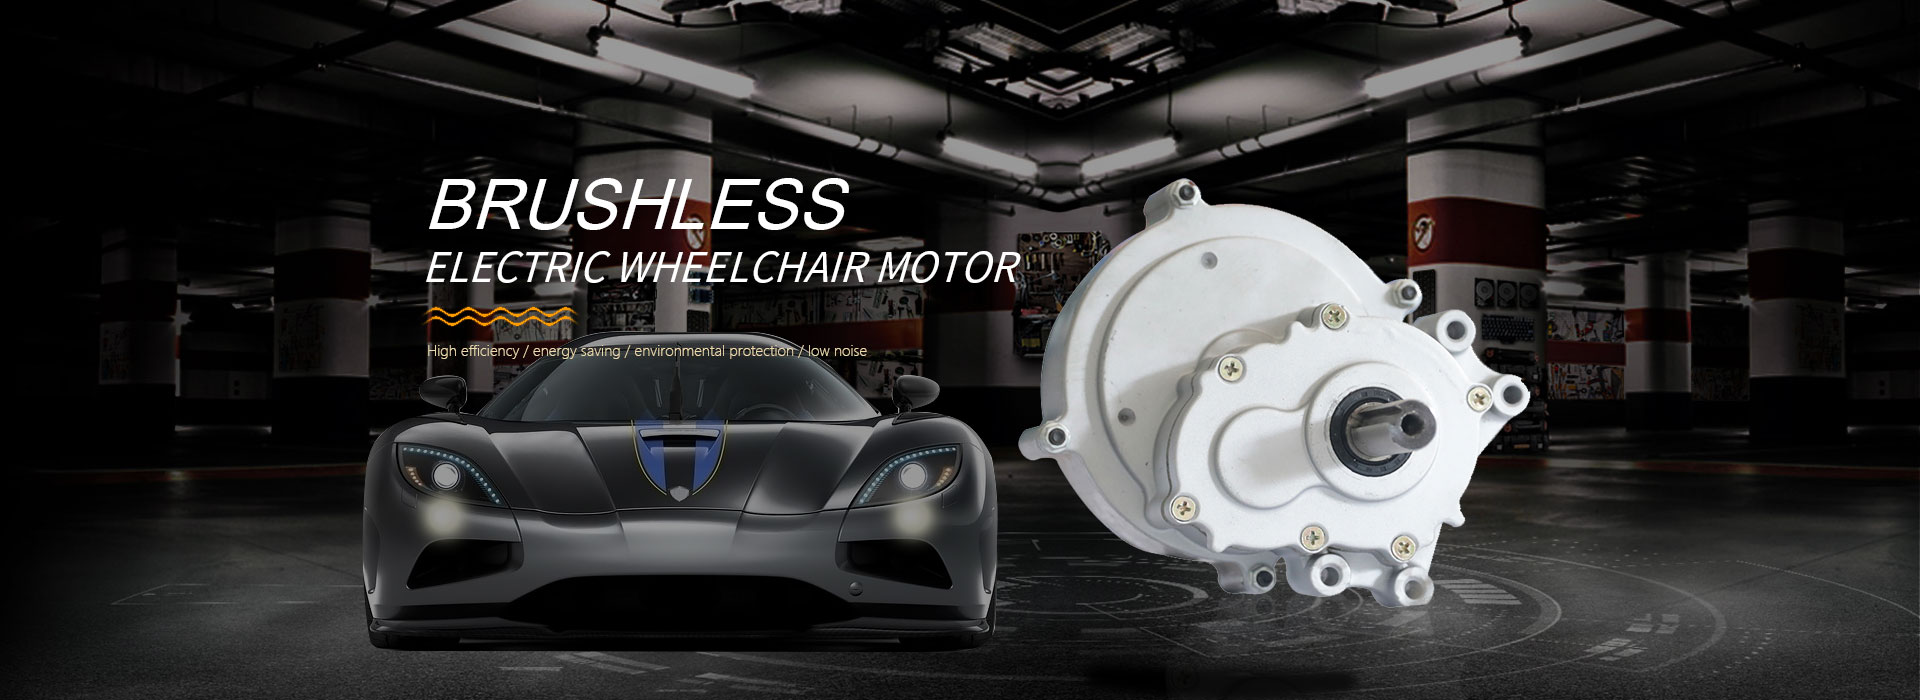 Electric wheelchair motor